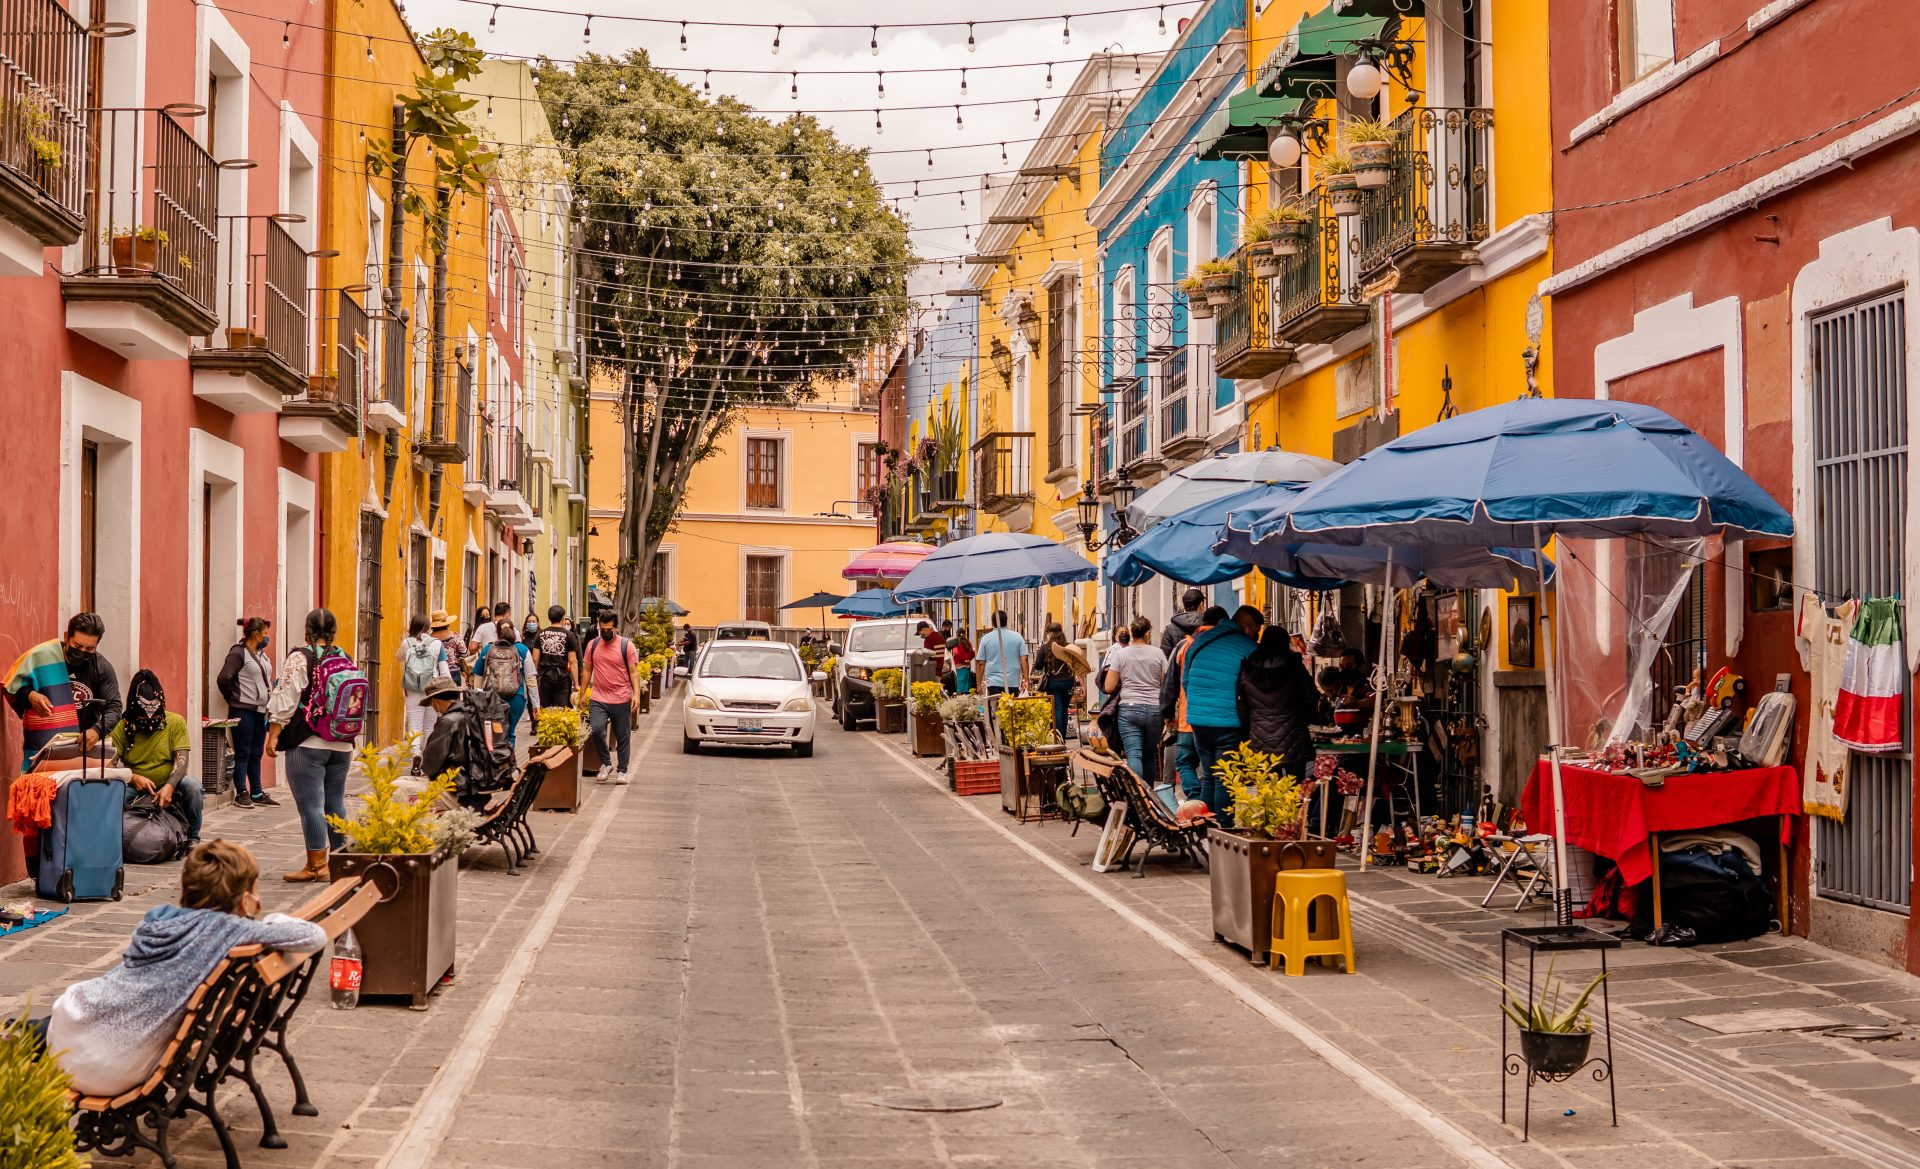 Colorful architecture in the center of Puebla